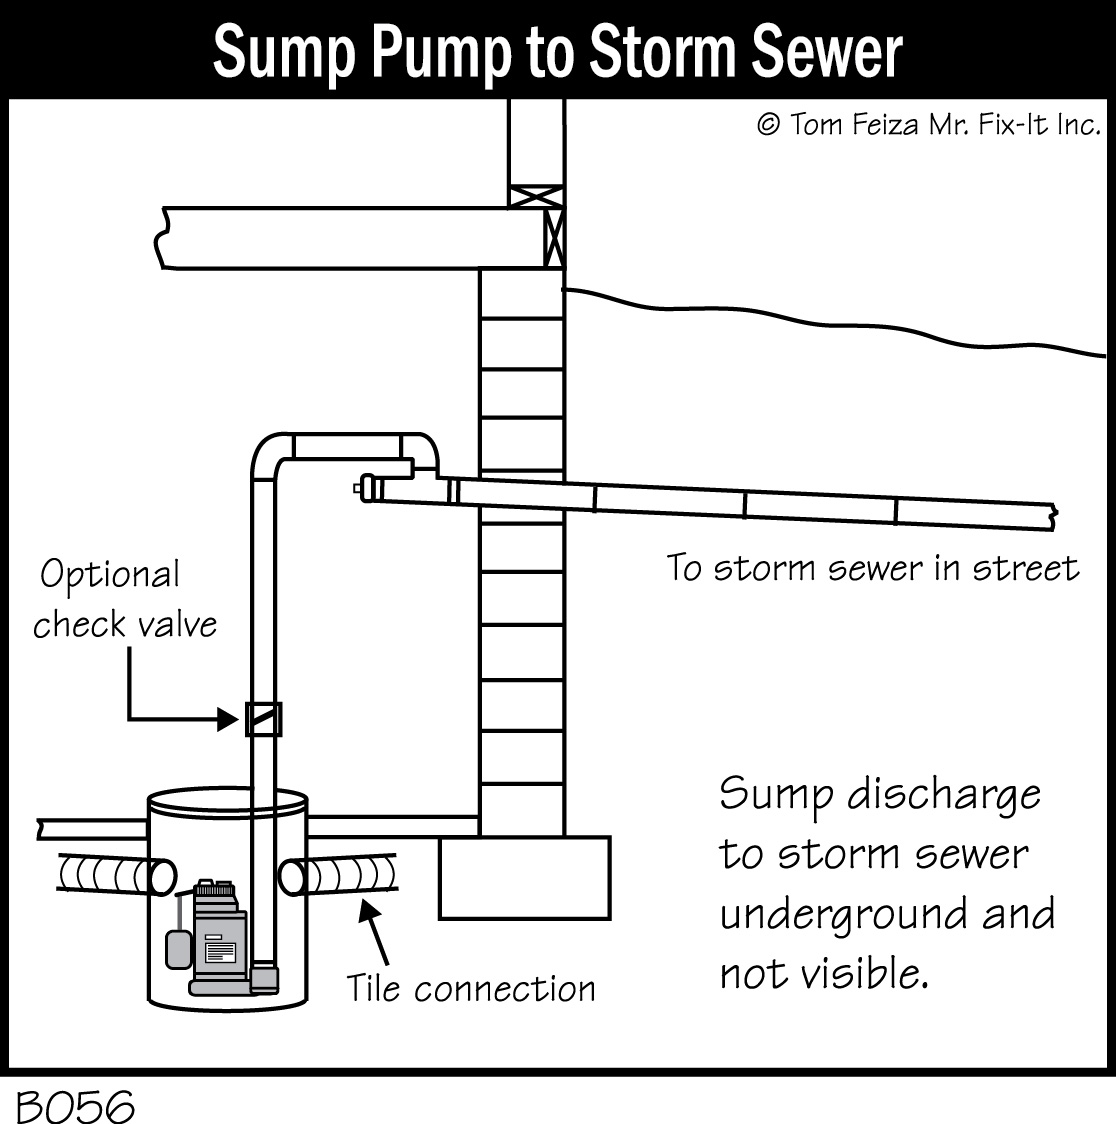 B056 Sump Pump To Storm Sewer